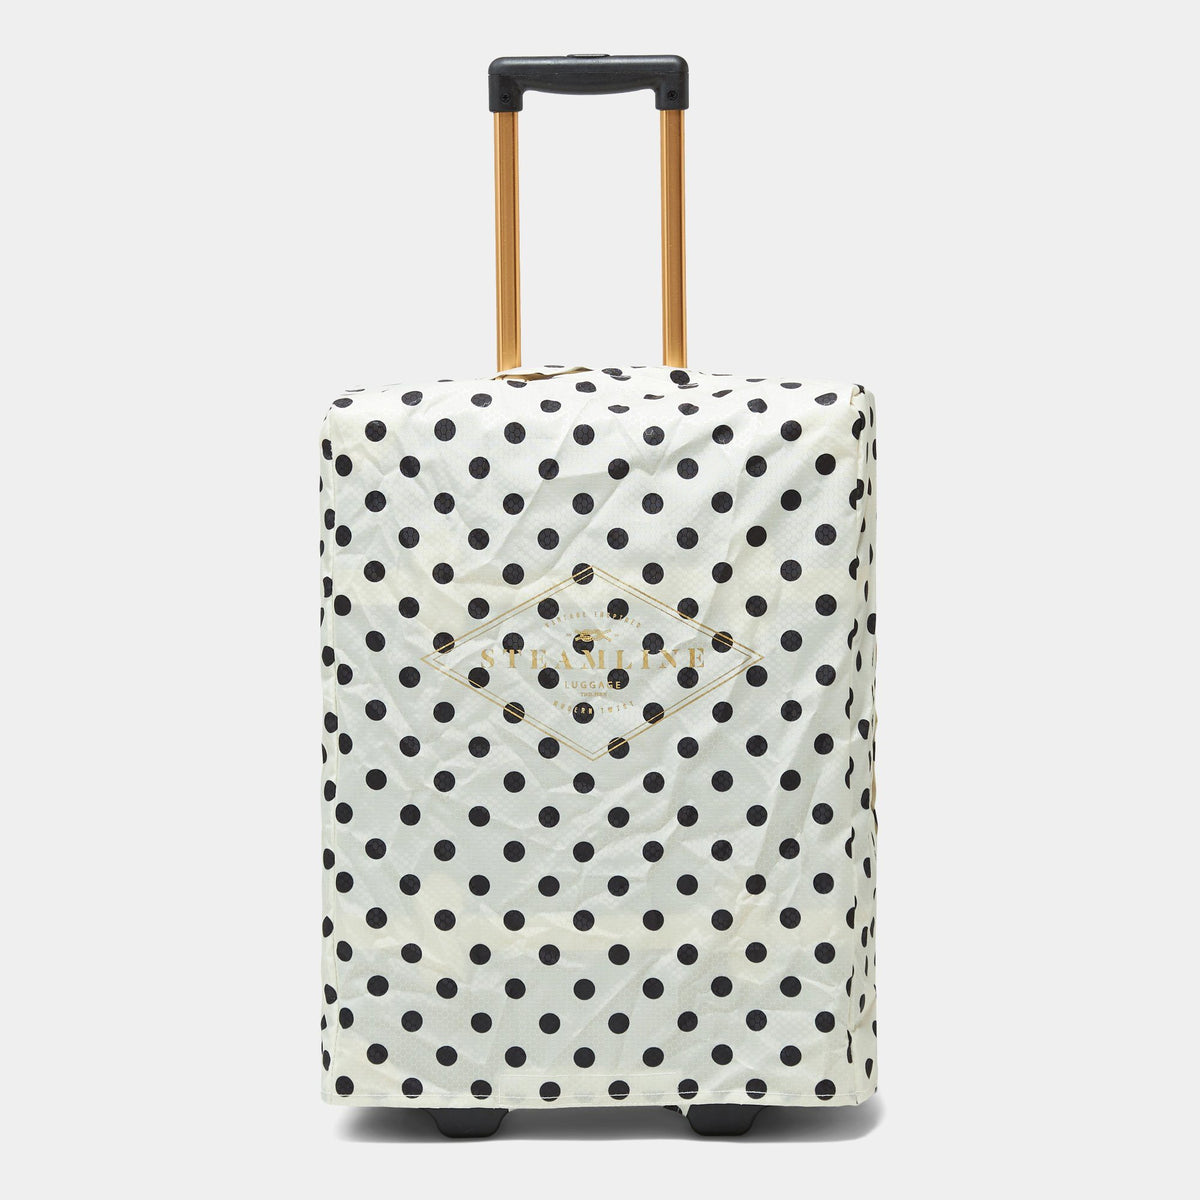 The Polka Dots Protective Cover - Stowaway Size